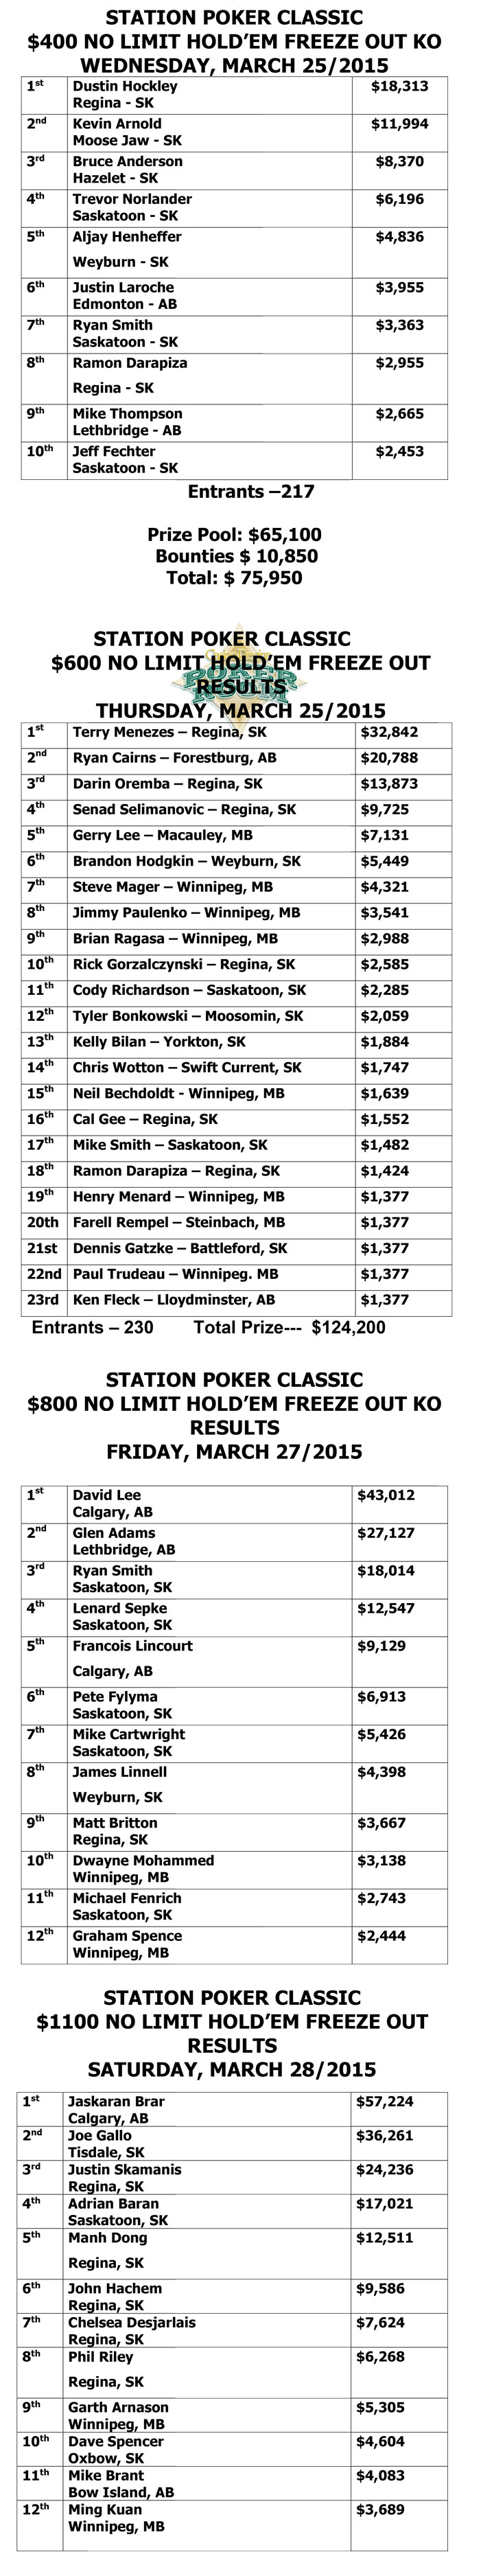 2015-STATION-POKER-CLASSIC-results